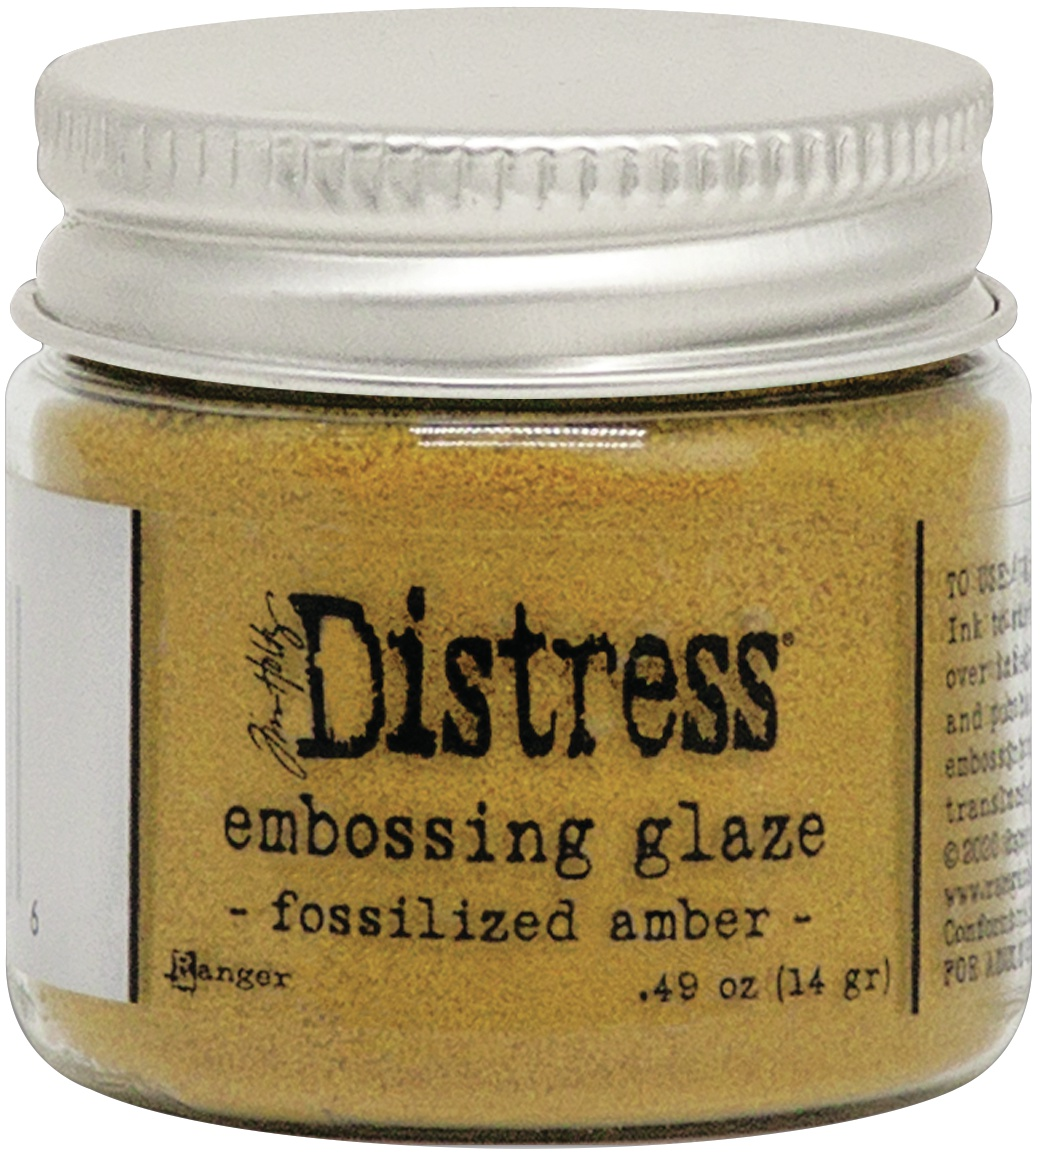 Tim Holtz Distress Embossing Glaze-Fossilized Amber